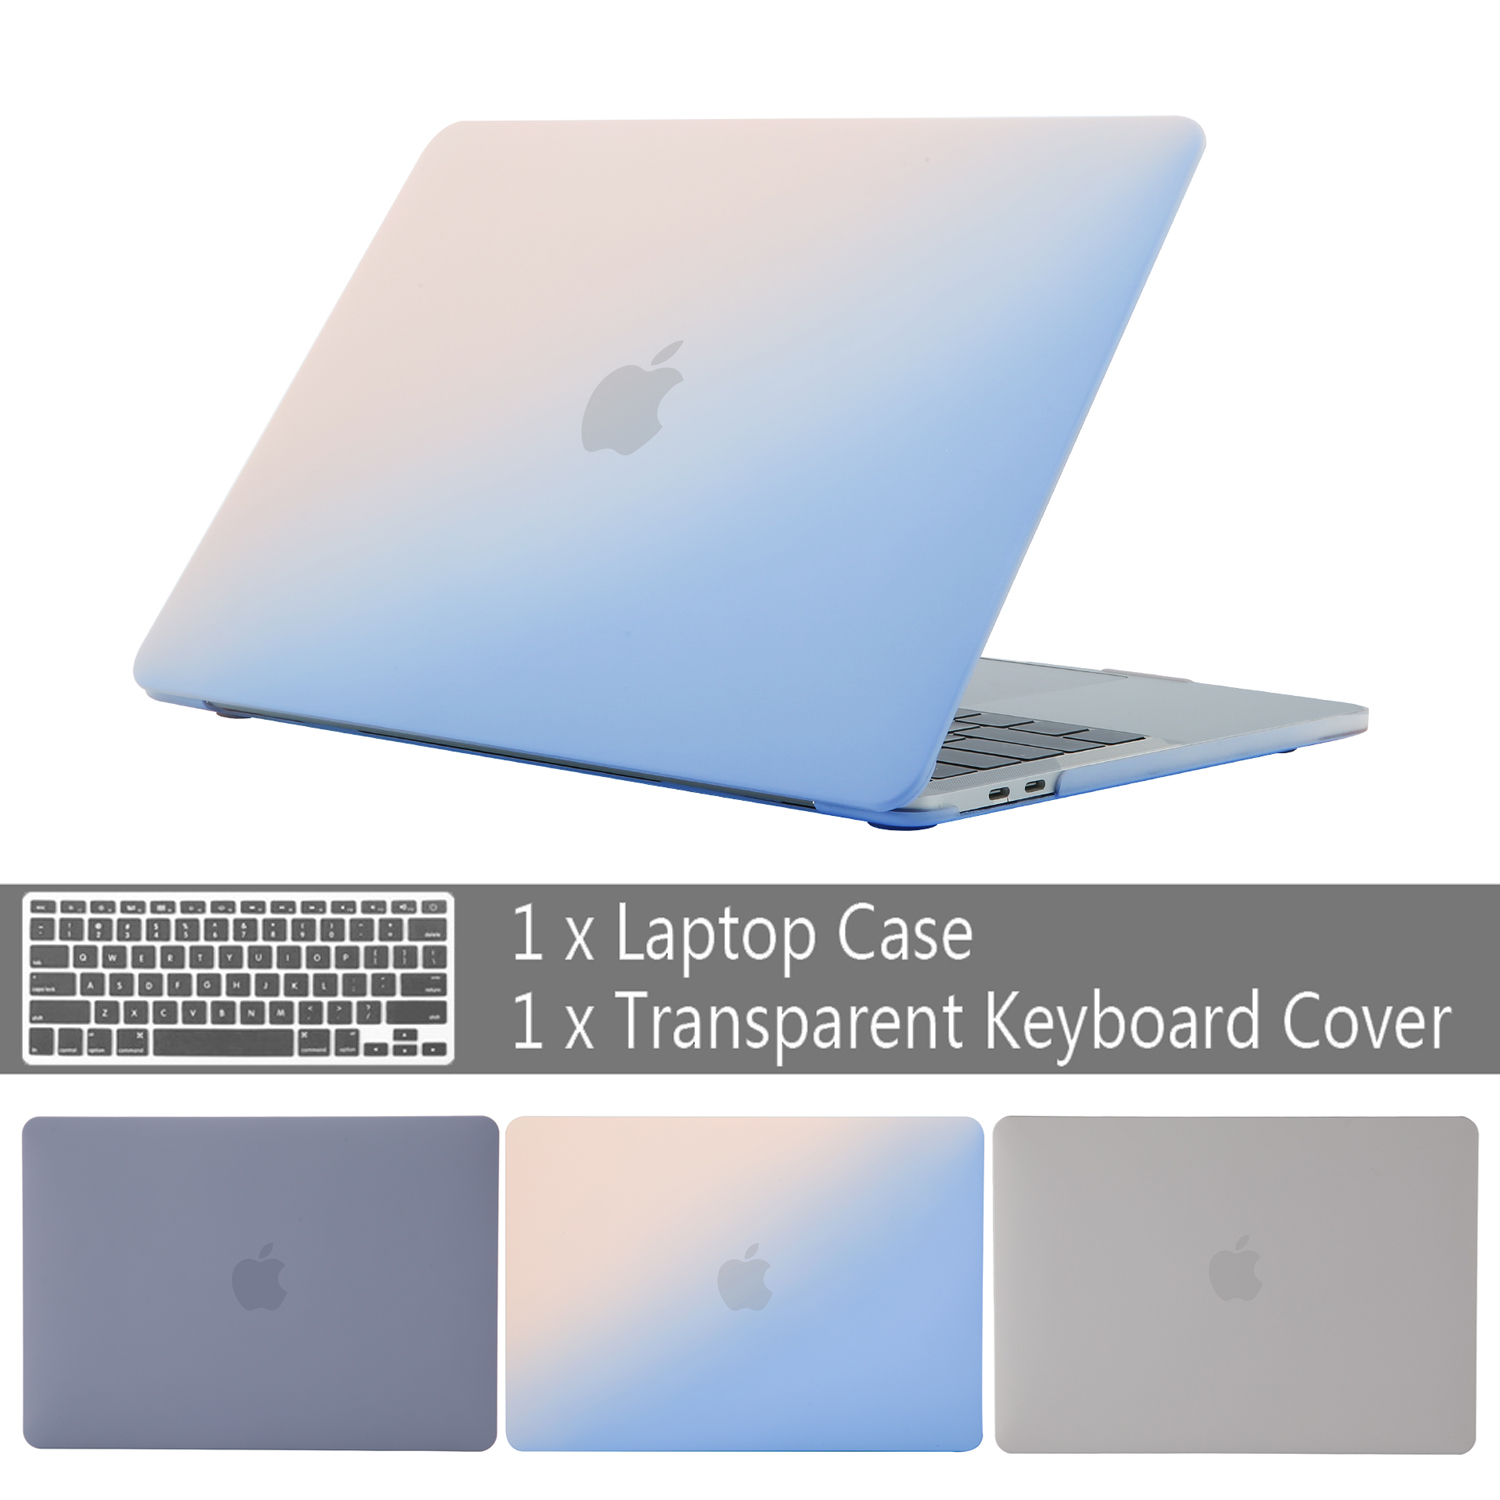 2019 Cream Color New Case For MacBook Air Pro Retina 11 12 13 15 For Mac Book 13.3 15.4 Inch With Touch Bar + Keyboard Cover